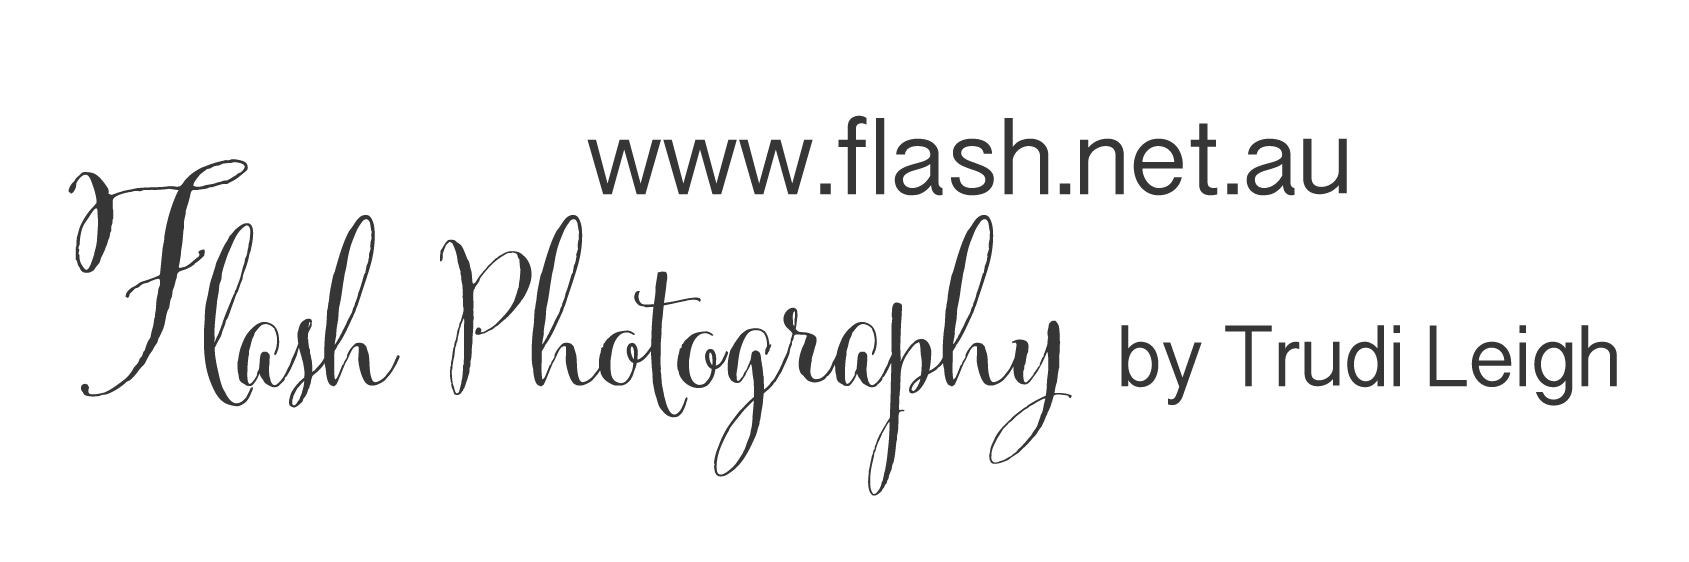 Flash Photography by Trudi Leigh